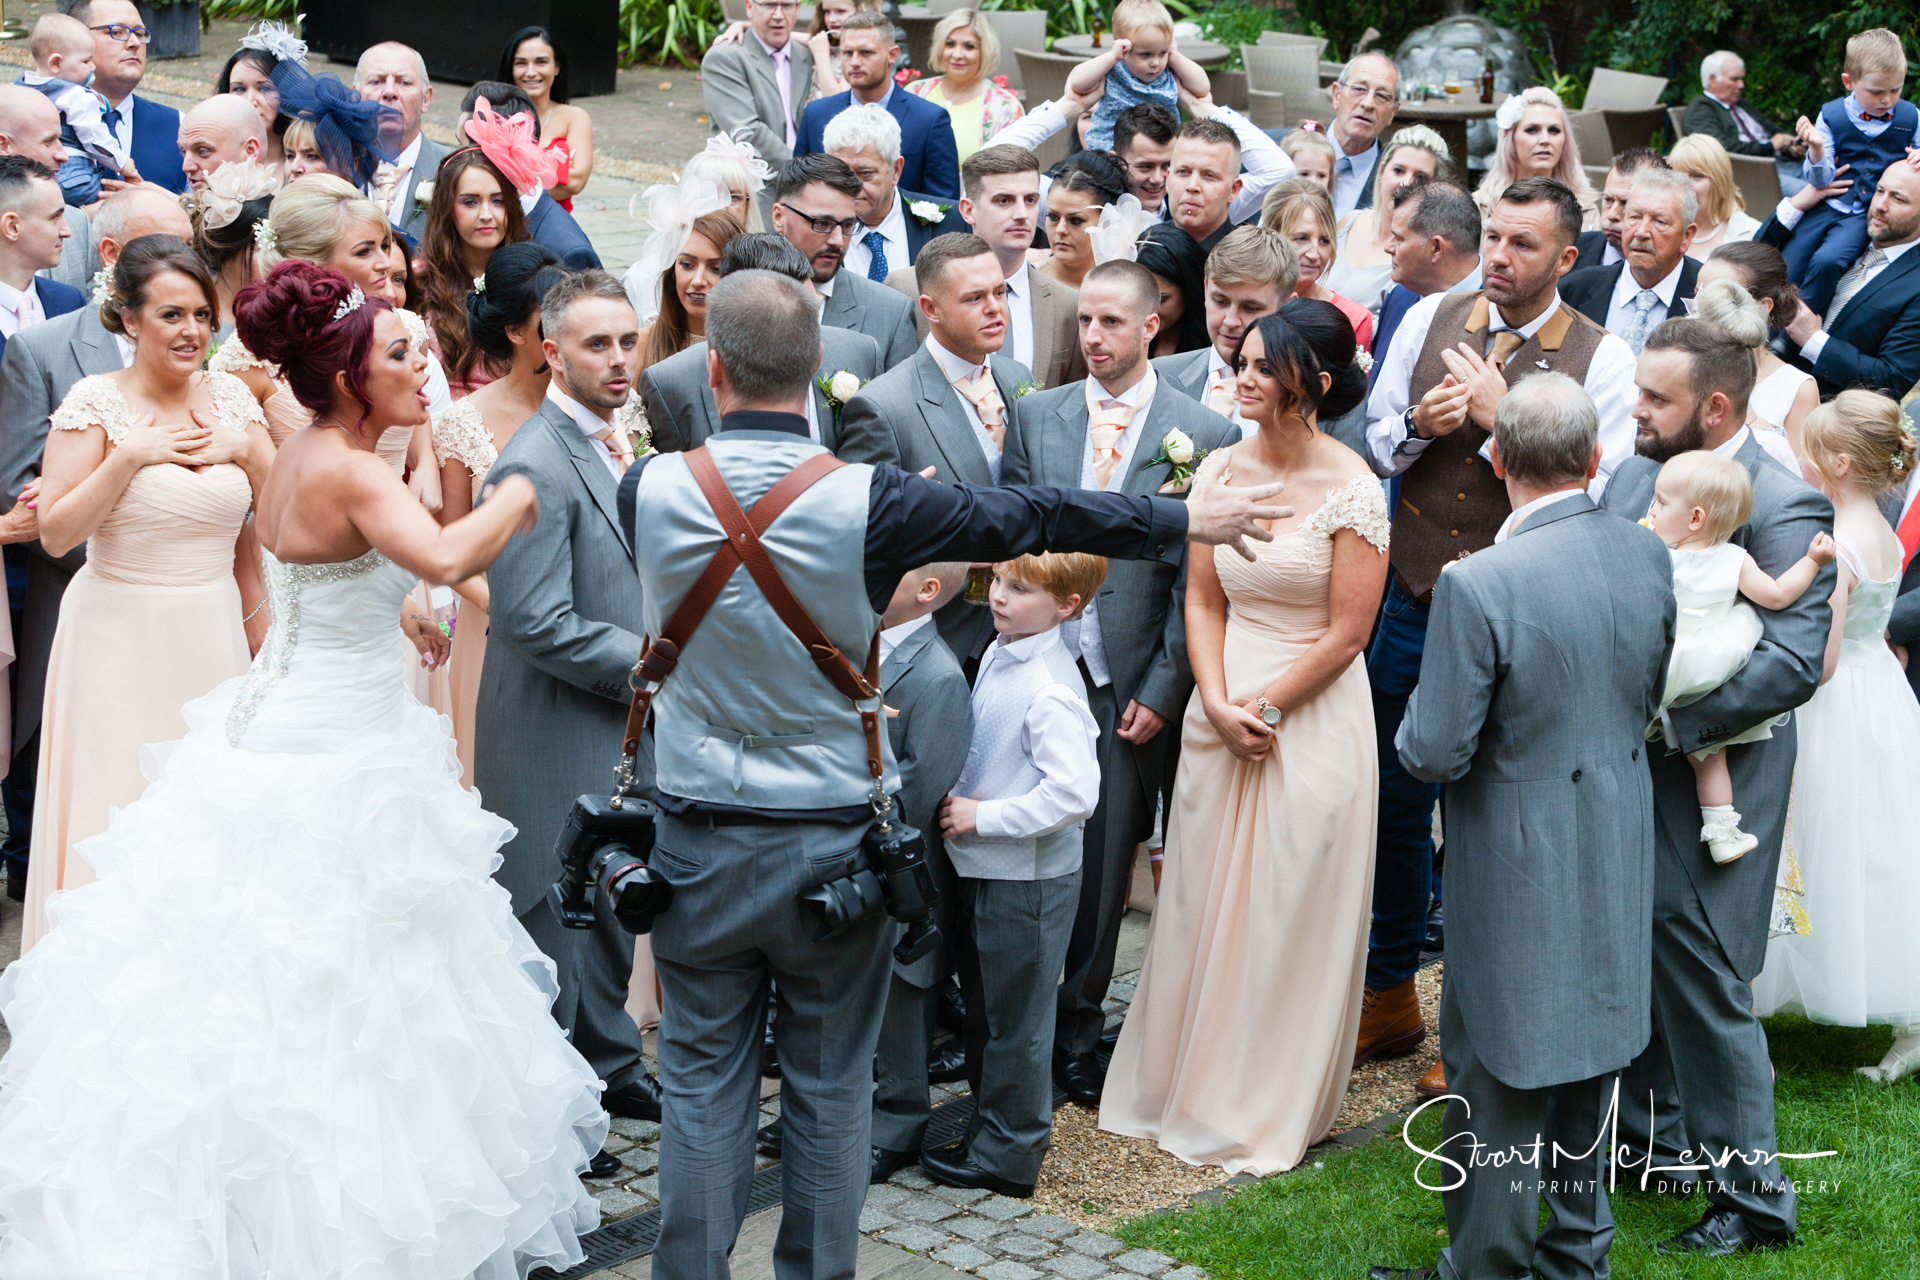 Queens Hotel Chester Wedding Photography by Stuart McLernon | M-PRINT Digital Imagery